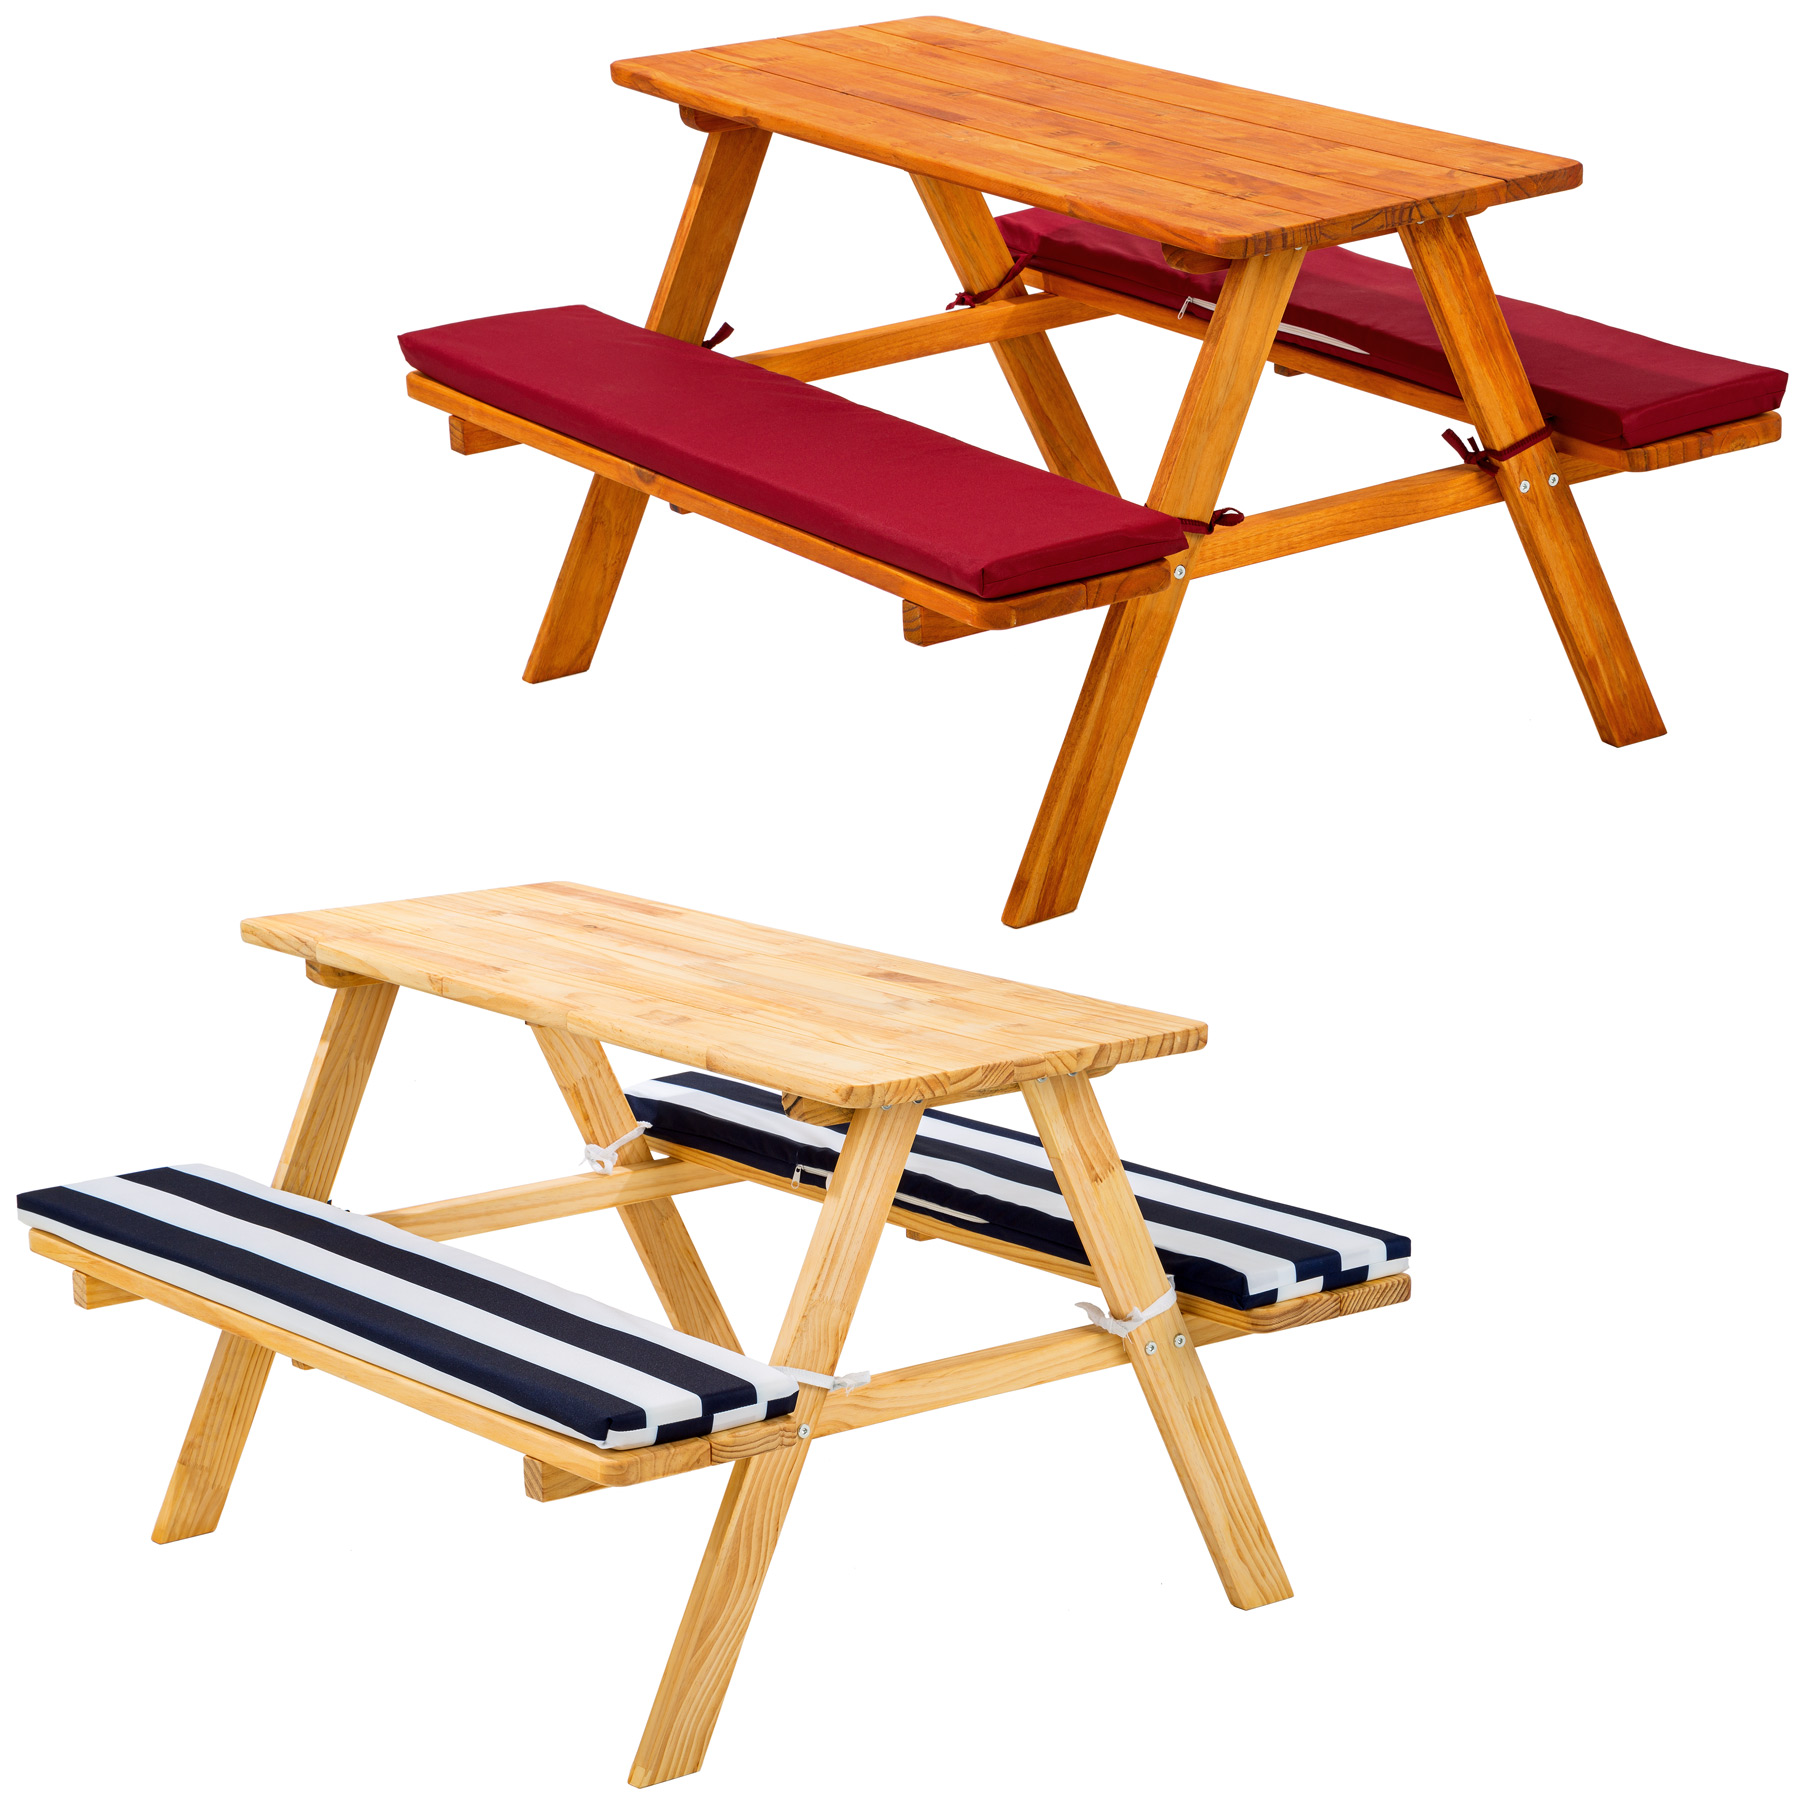 kids picnic table bench set childrens wood garden furniture with cushions. Black Bedroom Furniture Sets. Home Design Ideas